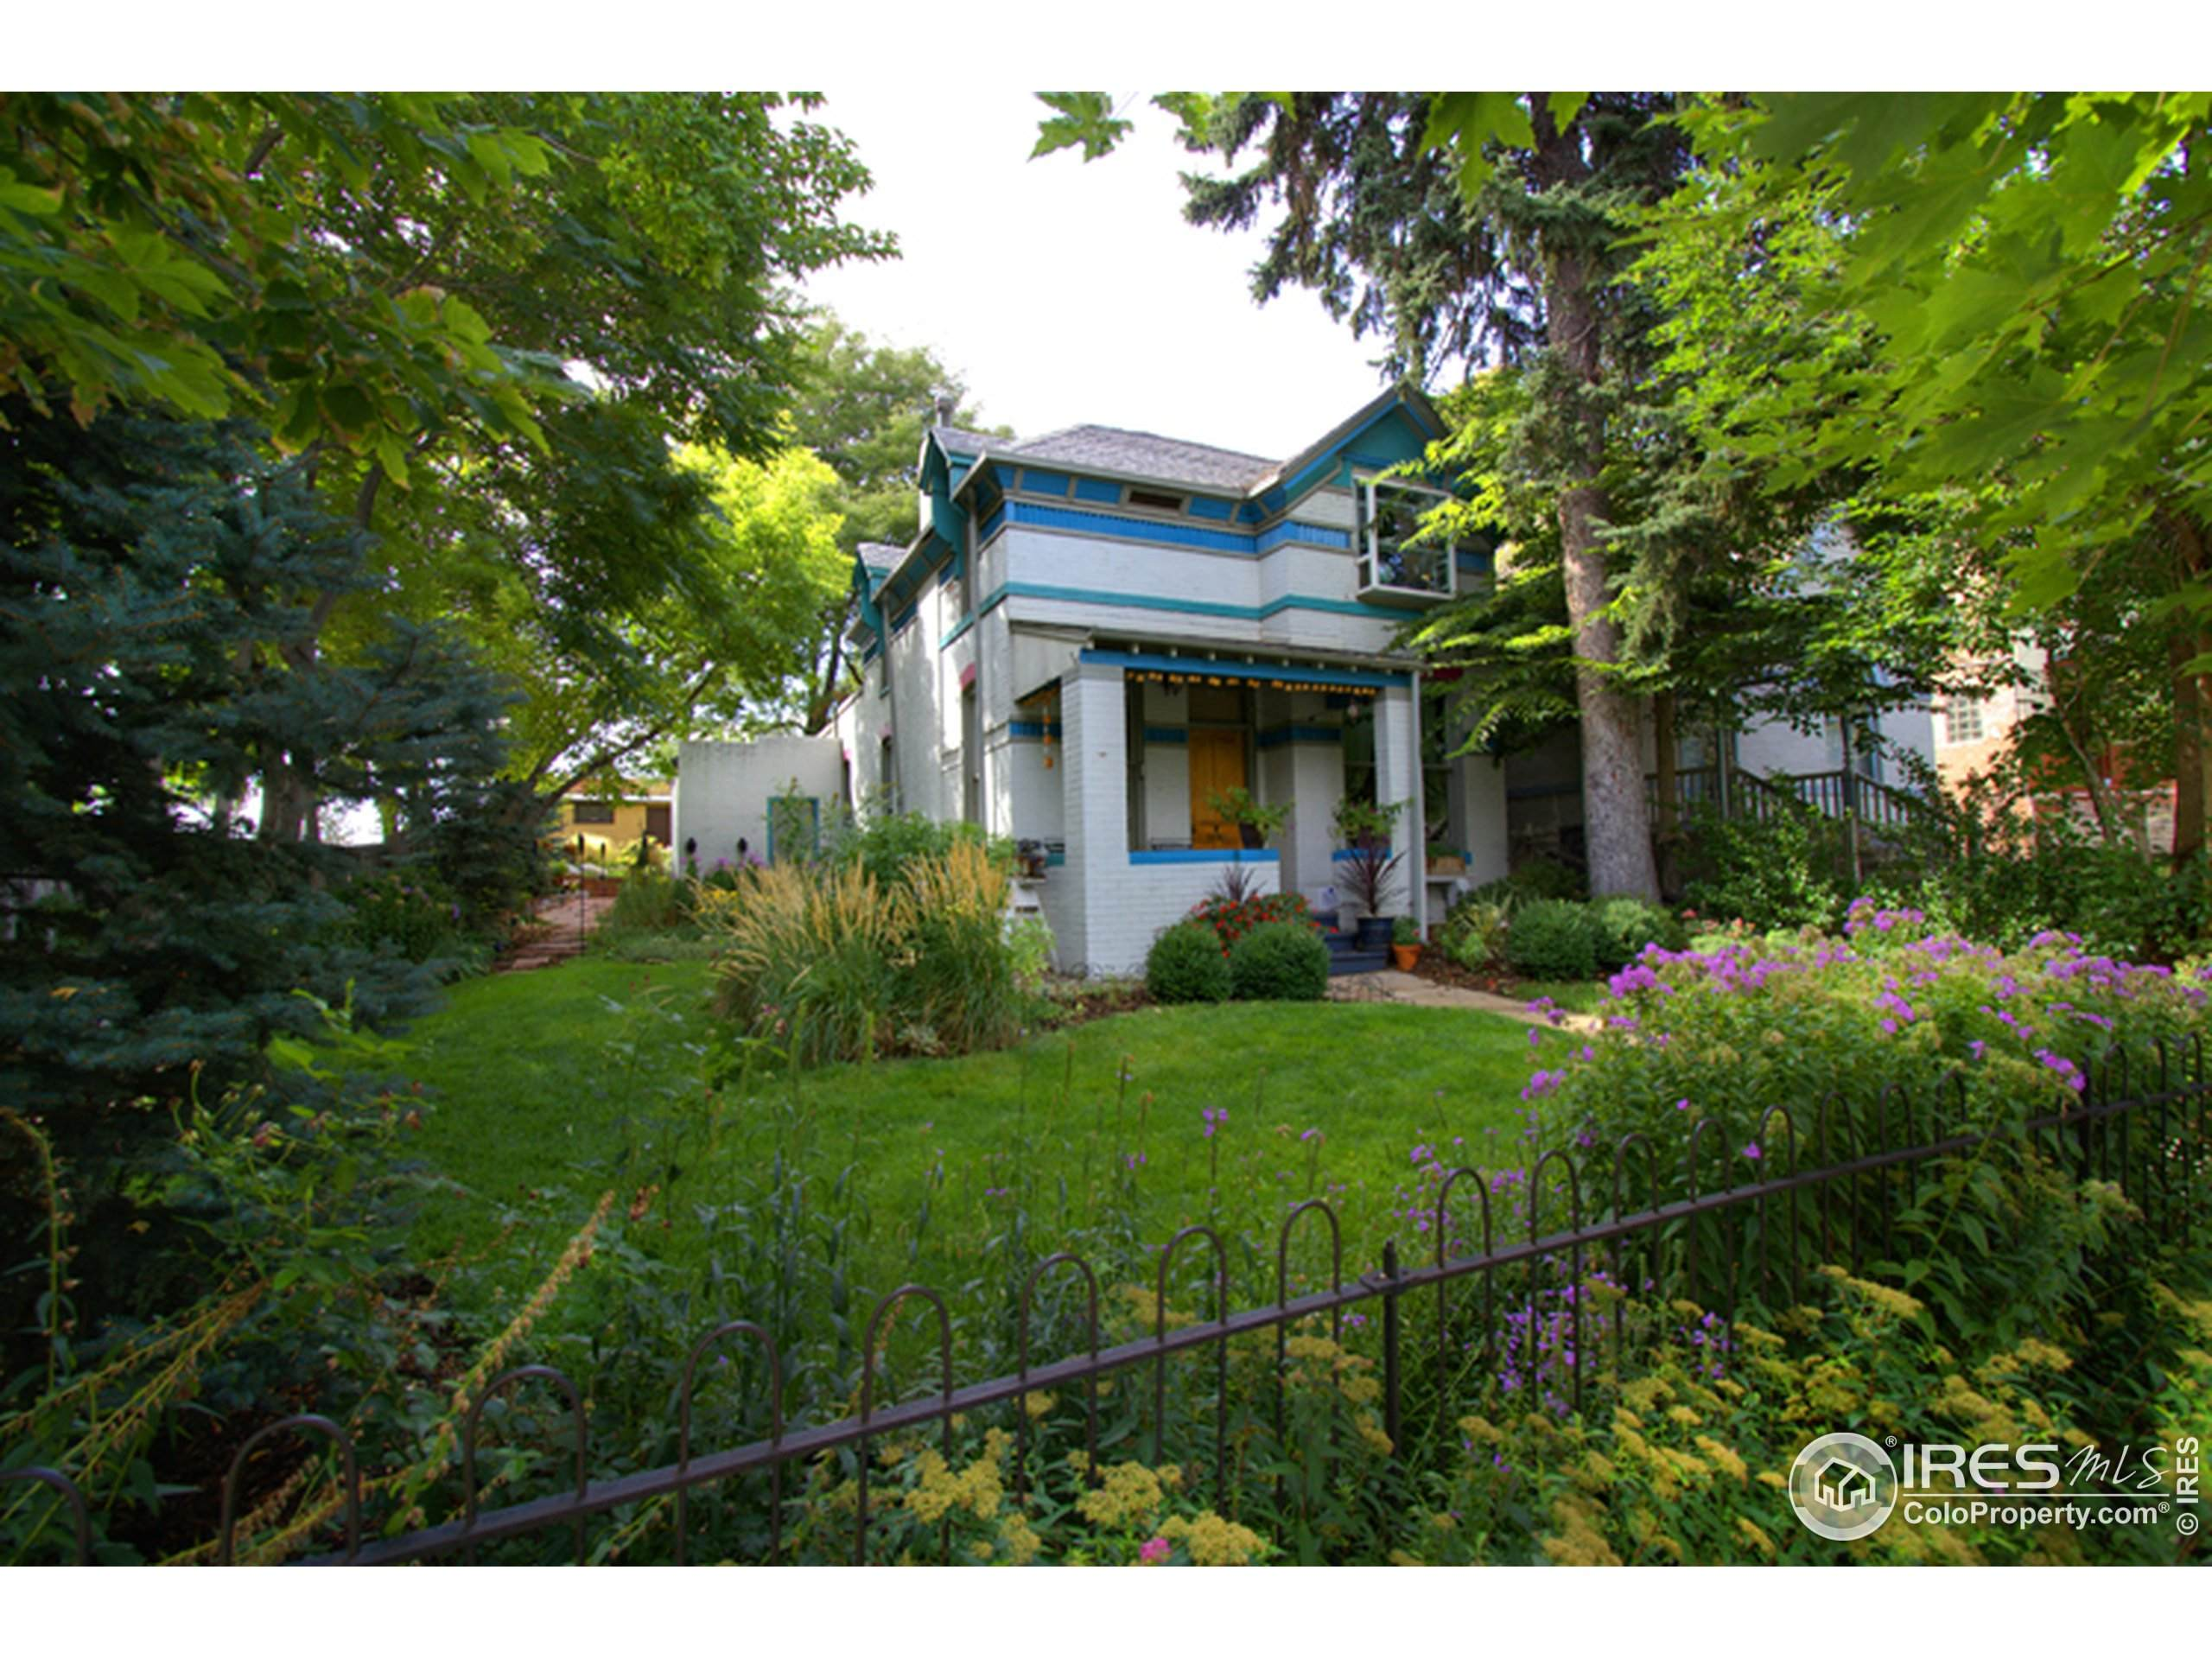 4198 W 99th Ct, Westminster, CO 80031 (#921033) :: The Margolis Team